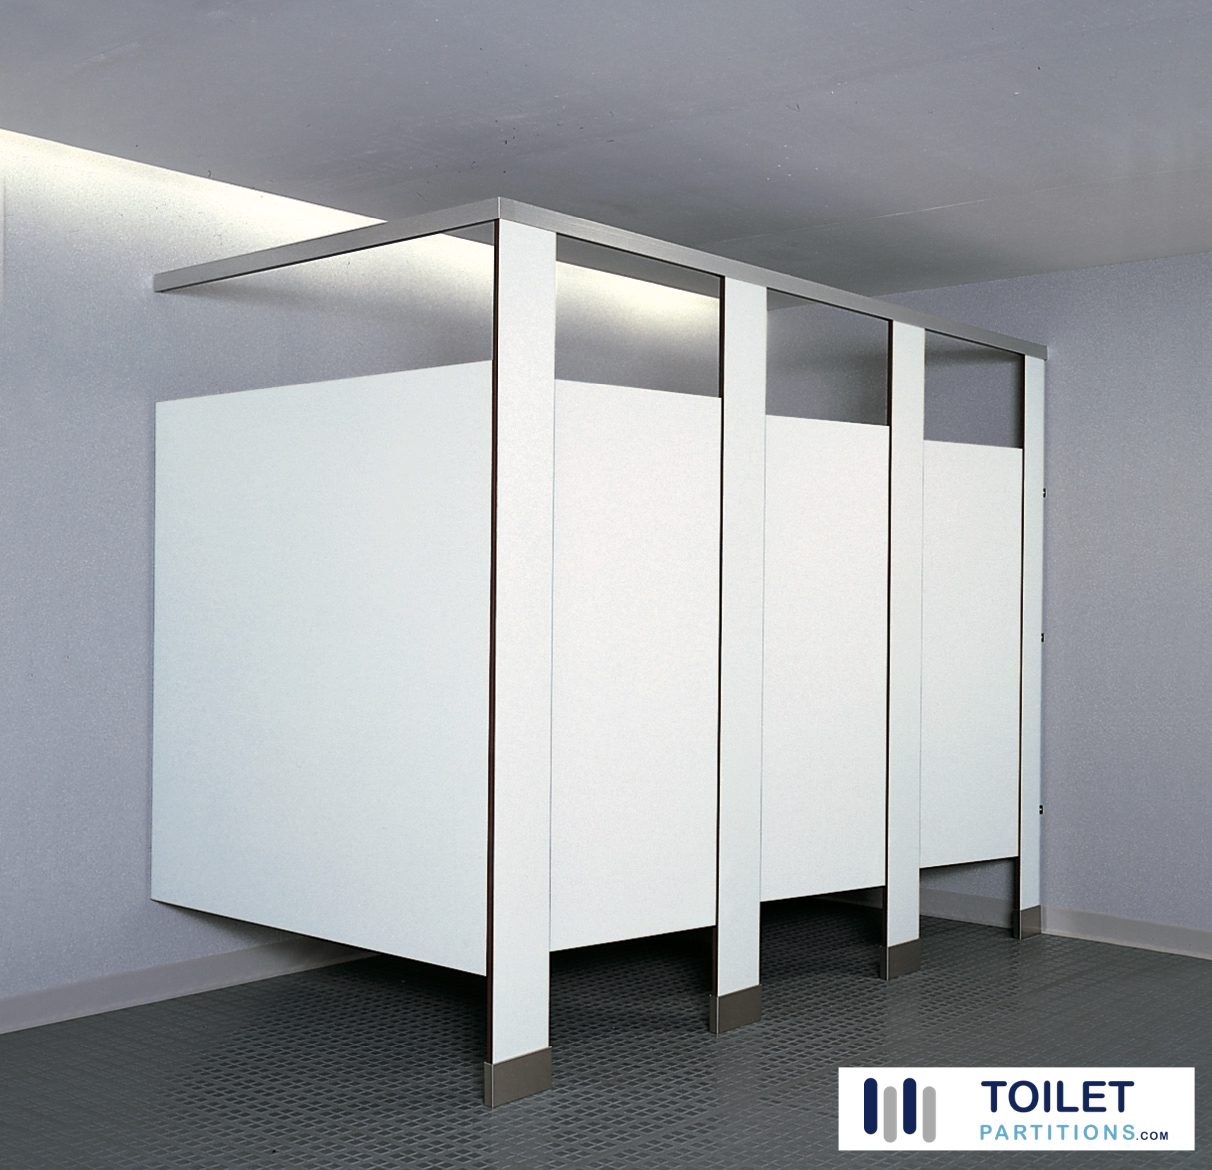 Compact-Laminate-Phenolic-Toilet Partitions-in-Sacramento